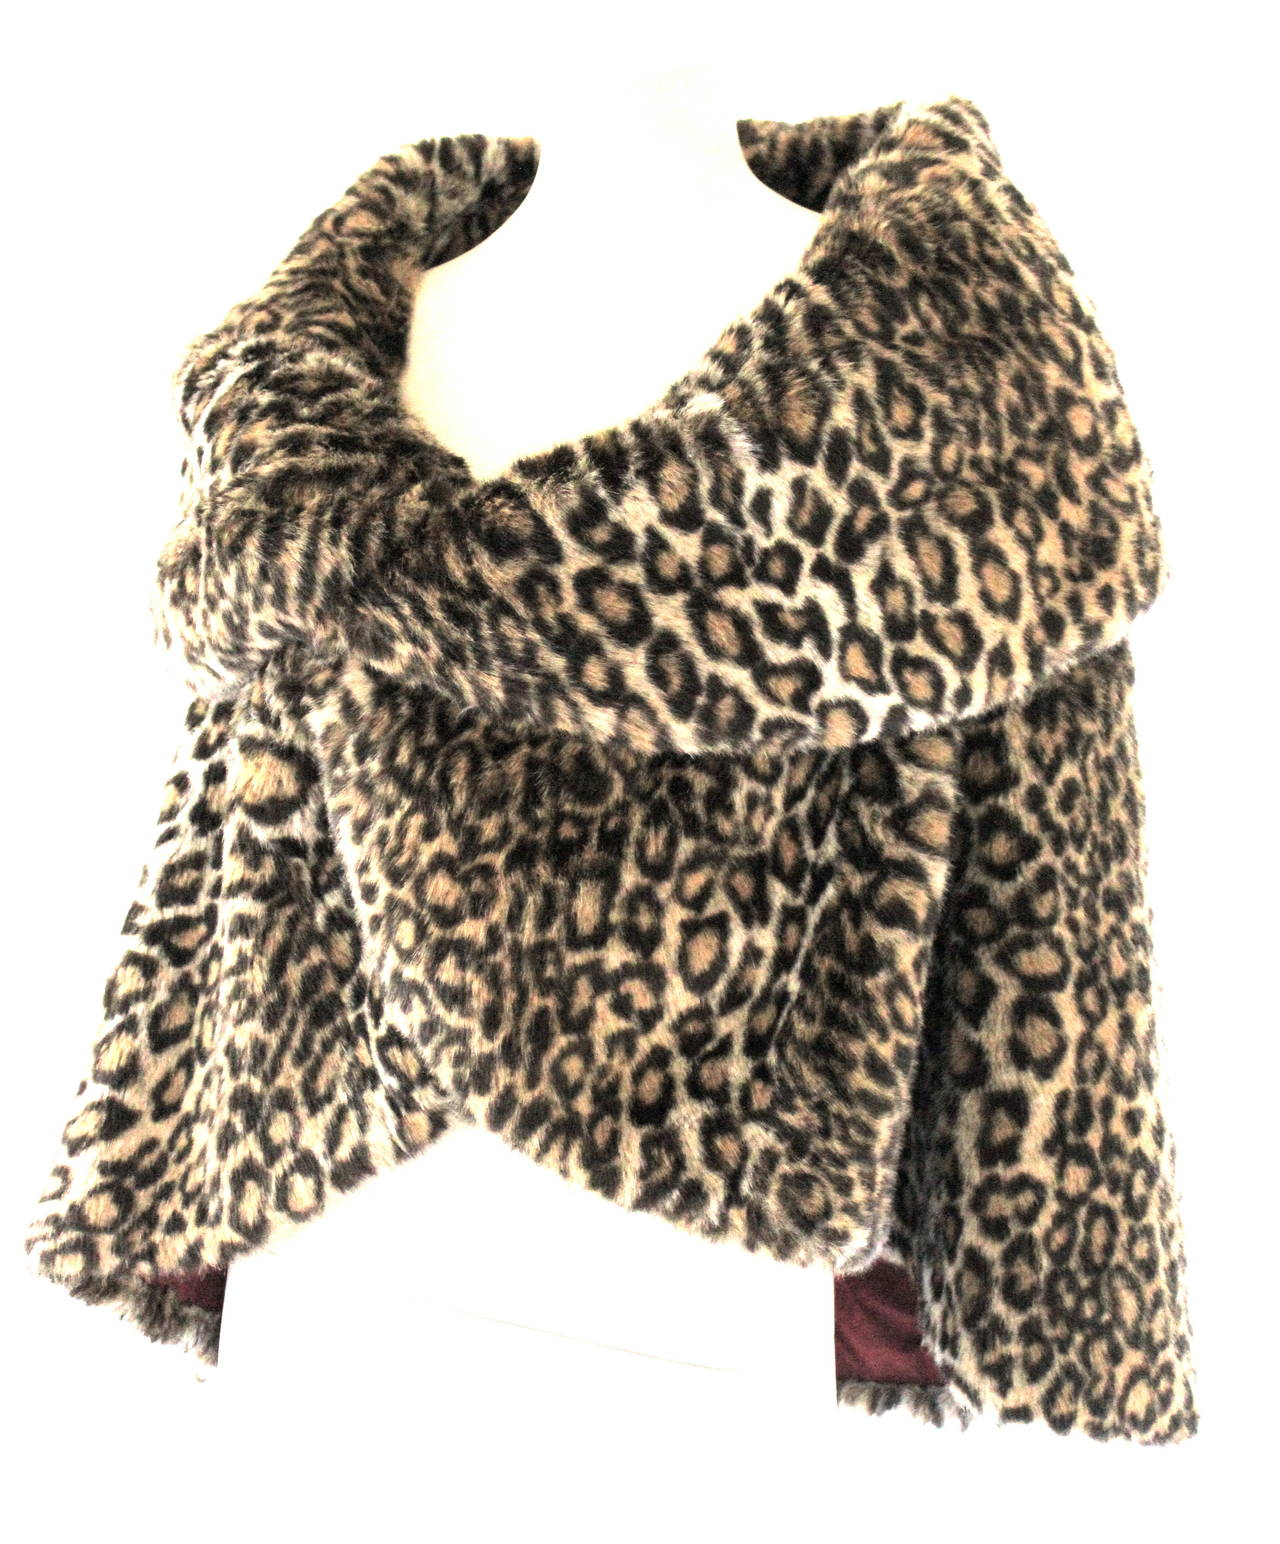 Junya Watanabe for CDG AD 2000 Faux Fur Leopard Cape For Sale 2